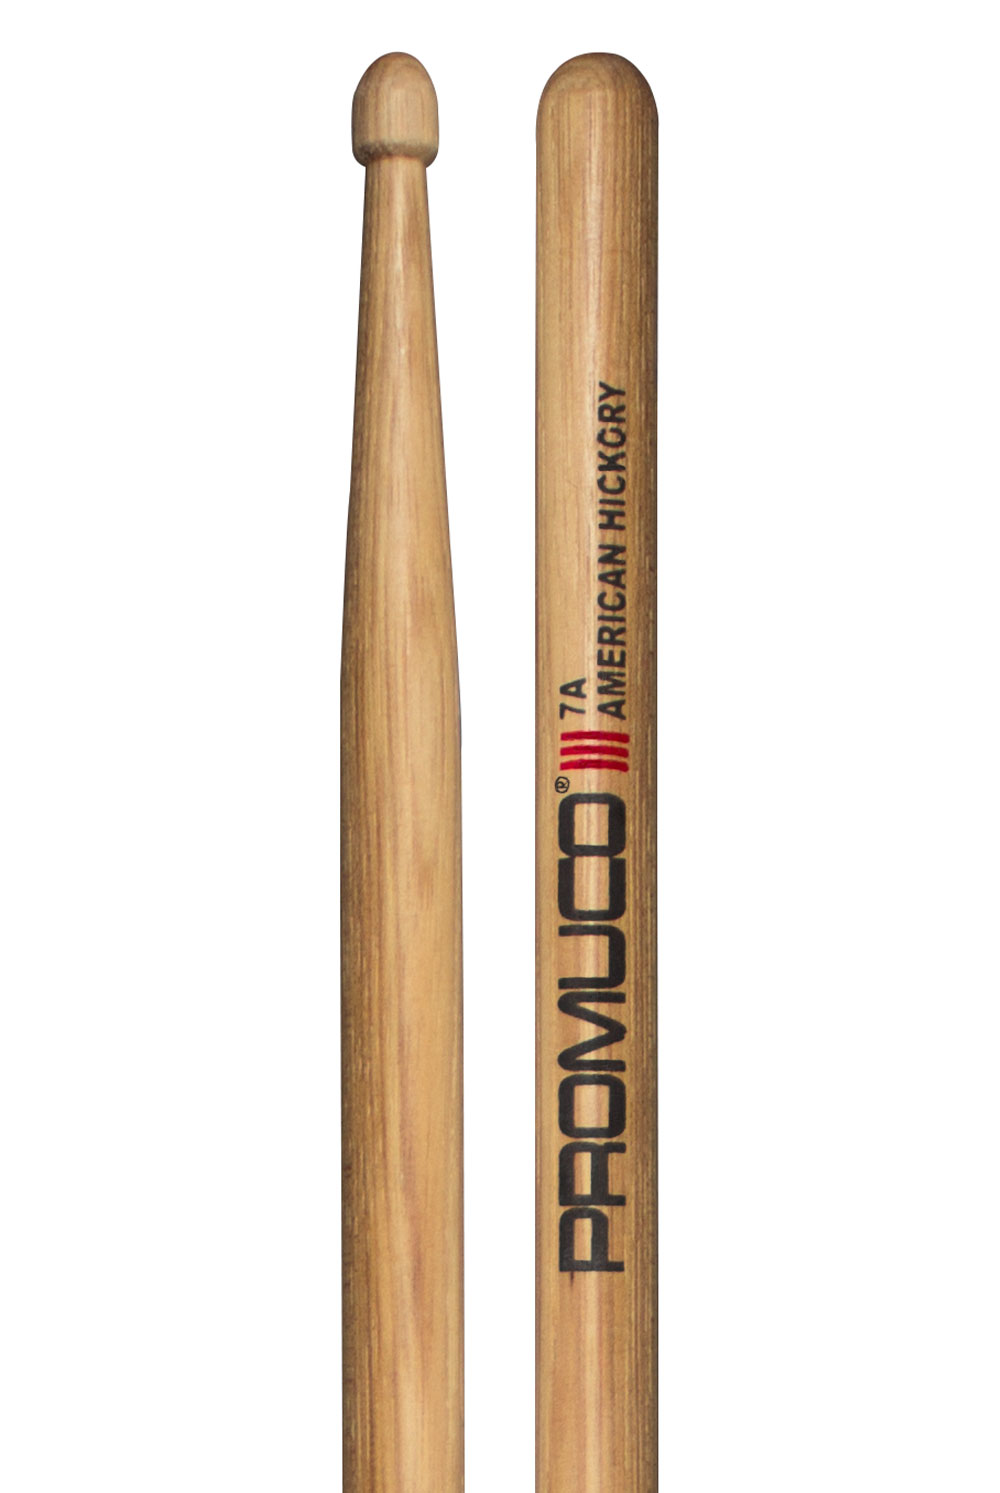 Promuco Drumsticks - Hickory 5B